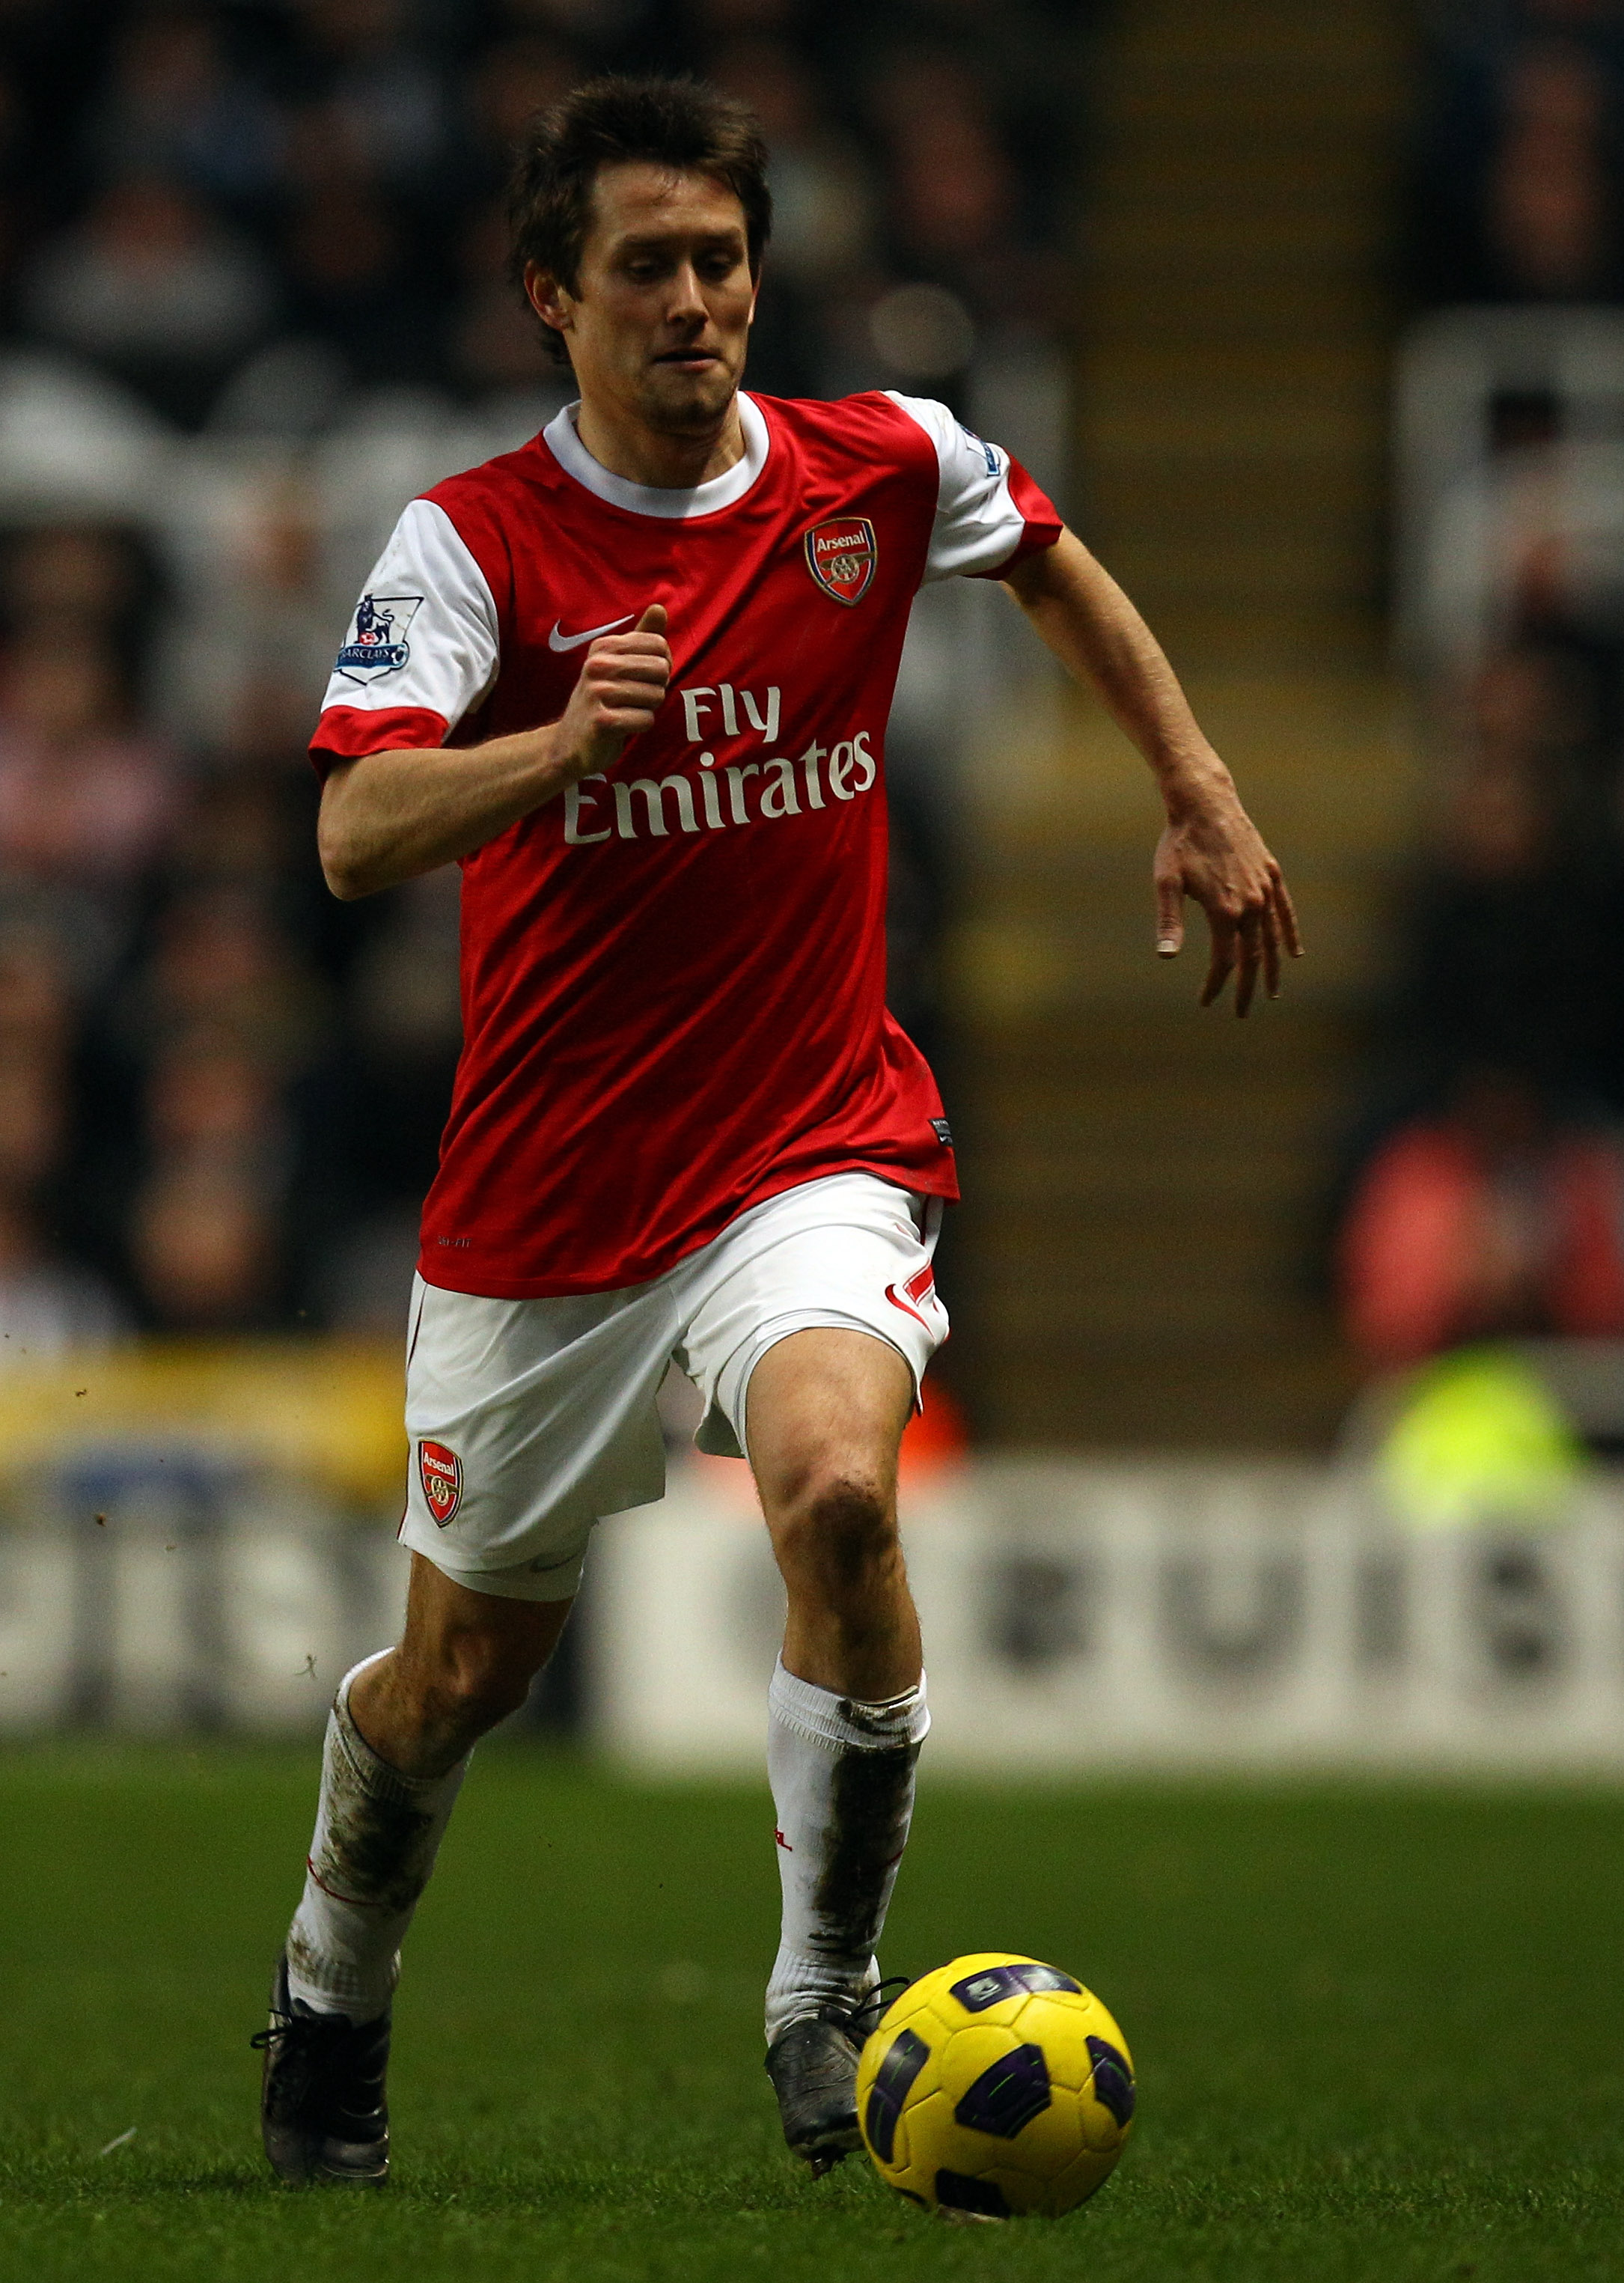 NEWCASTLE UPON TYNE, ENGLAND - FEBRUARY 05:  Tomas Rosicky of Arsenal in action during the Barclays Premier League match between Newcastle United and Arsenal at St James' Park on February 5, 2011 in Newcastle upon Tyne, England.  (Photo by Richard Heathco